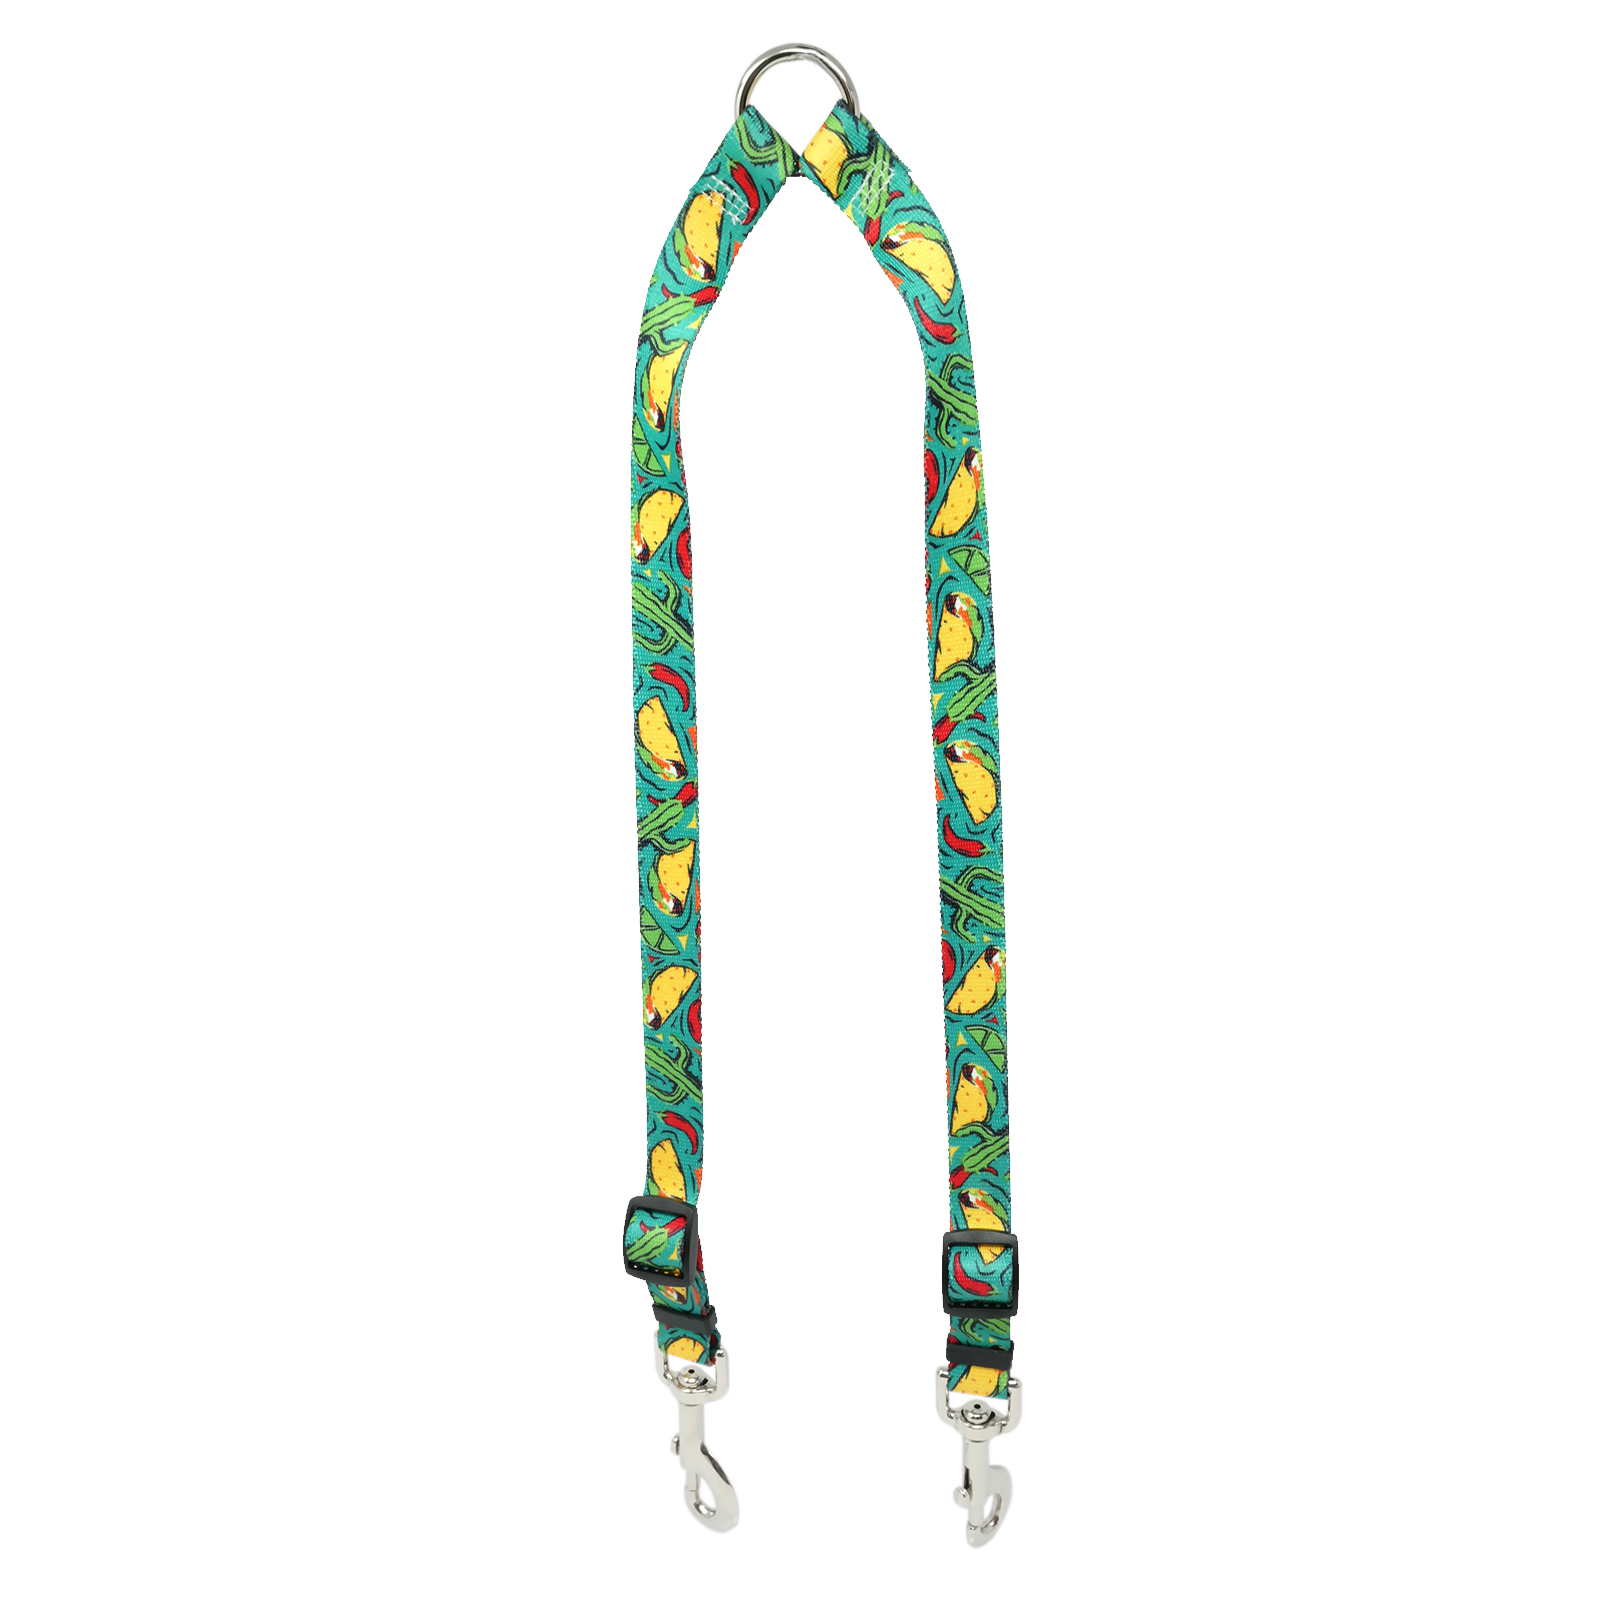 Taco Fiesta Teal  Coupler Lead